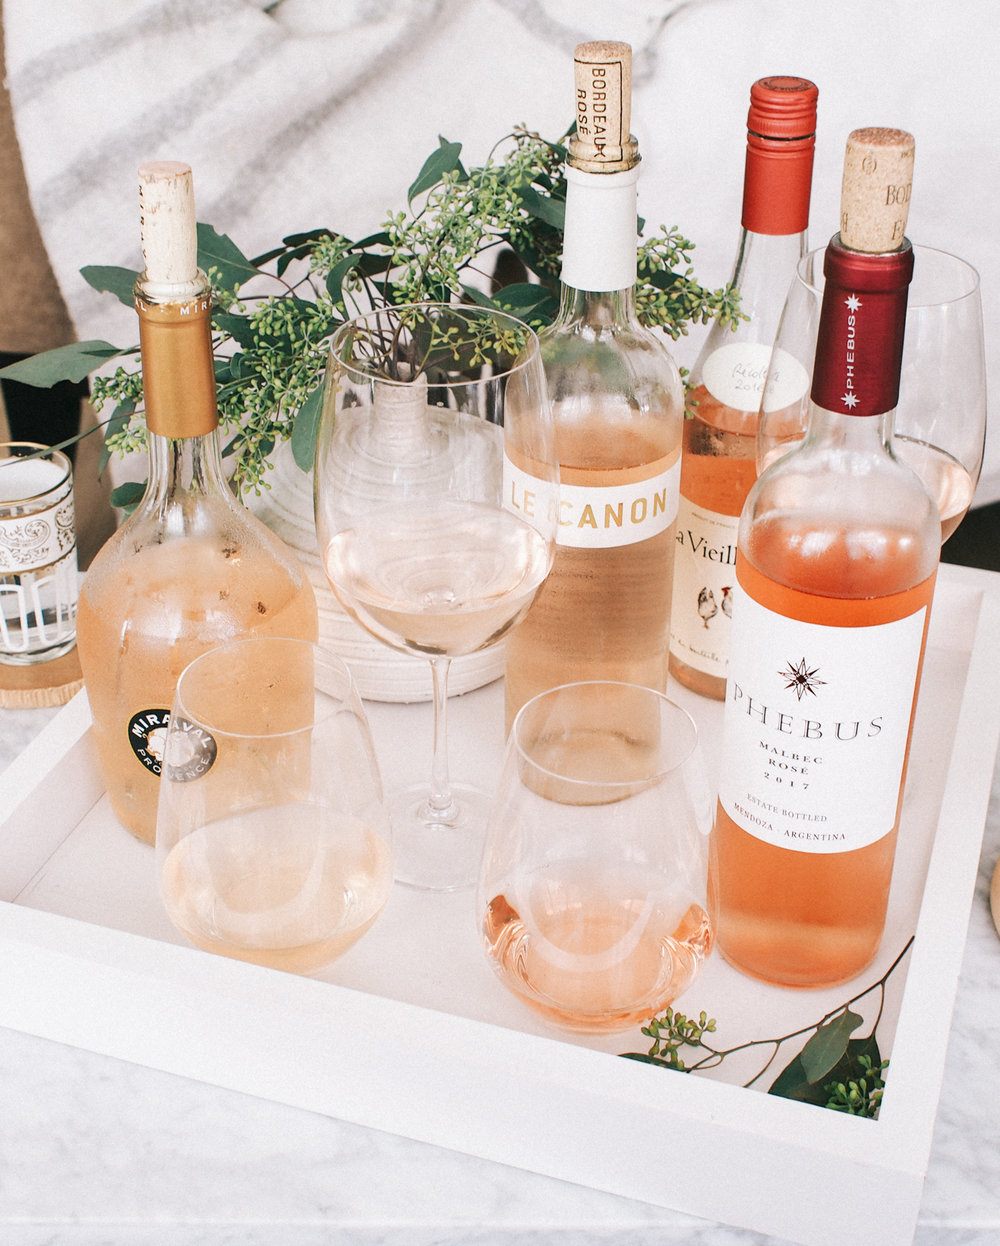 Hosting our own rosé tasting at home on the blog | A Fabulous Fete